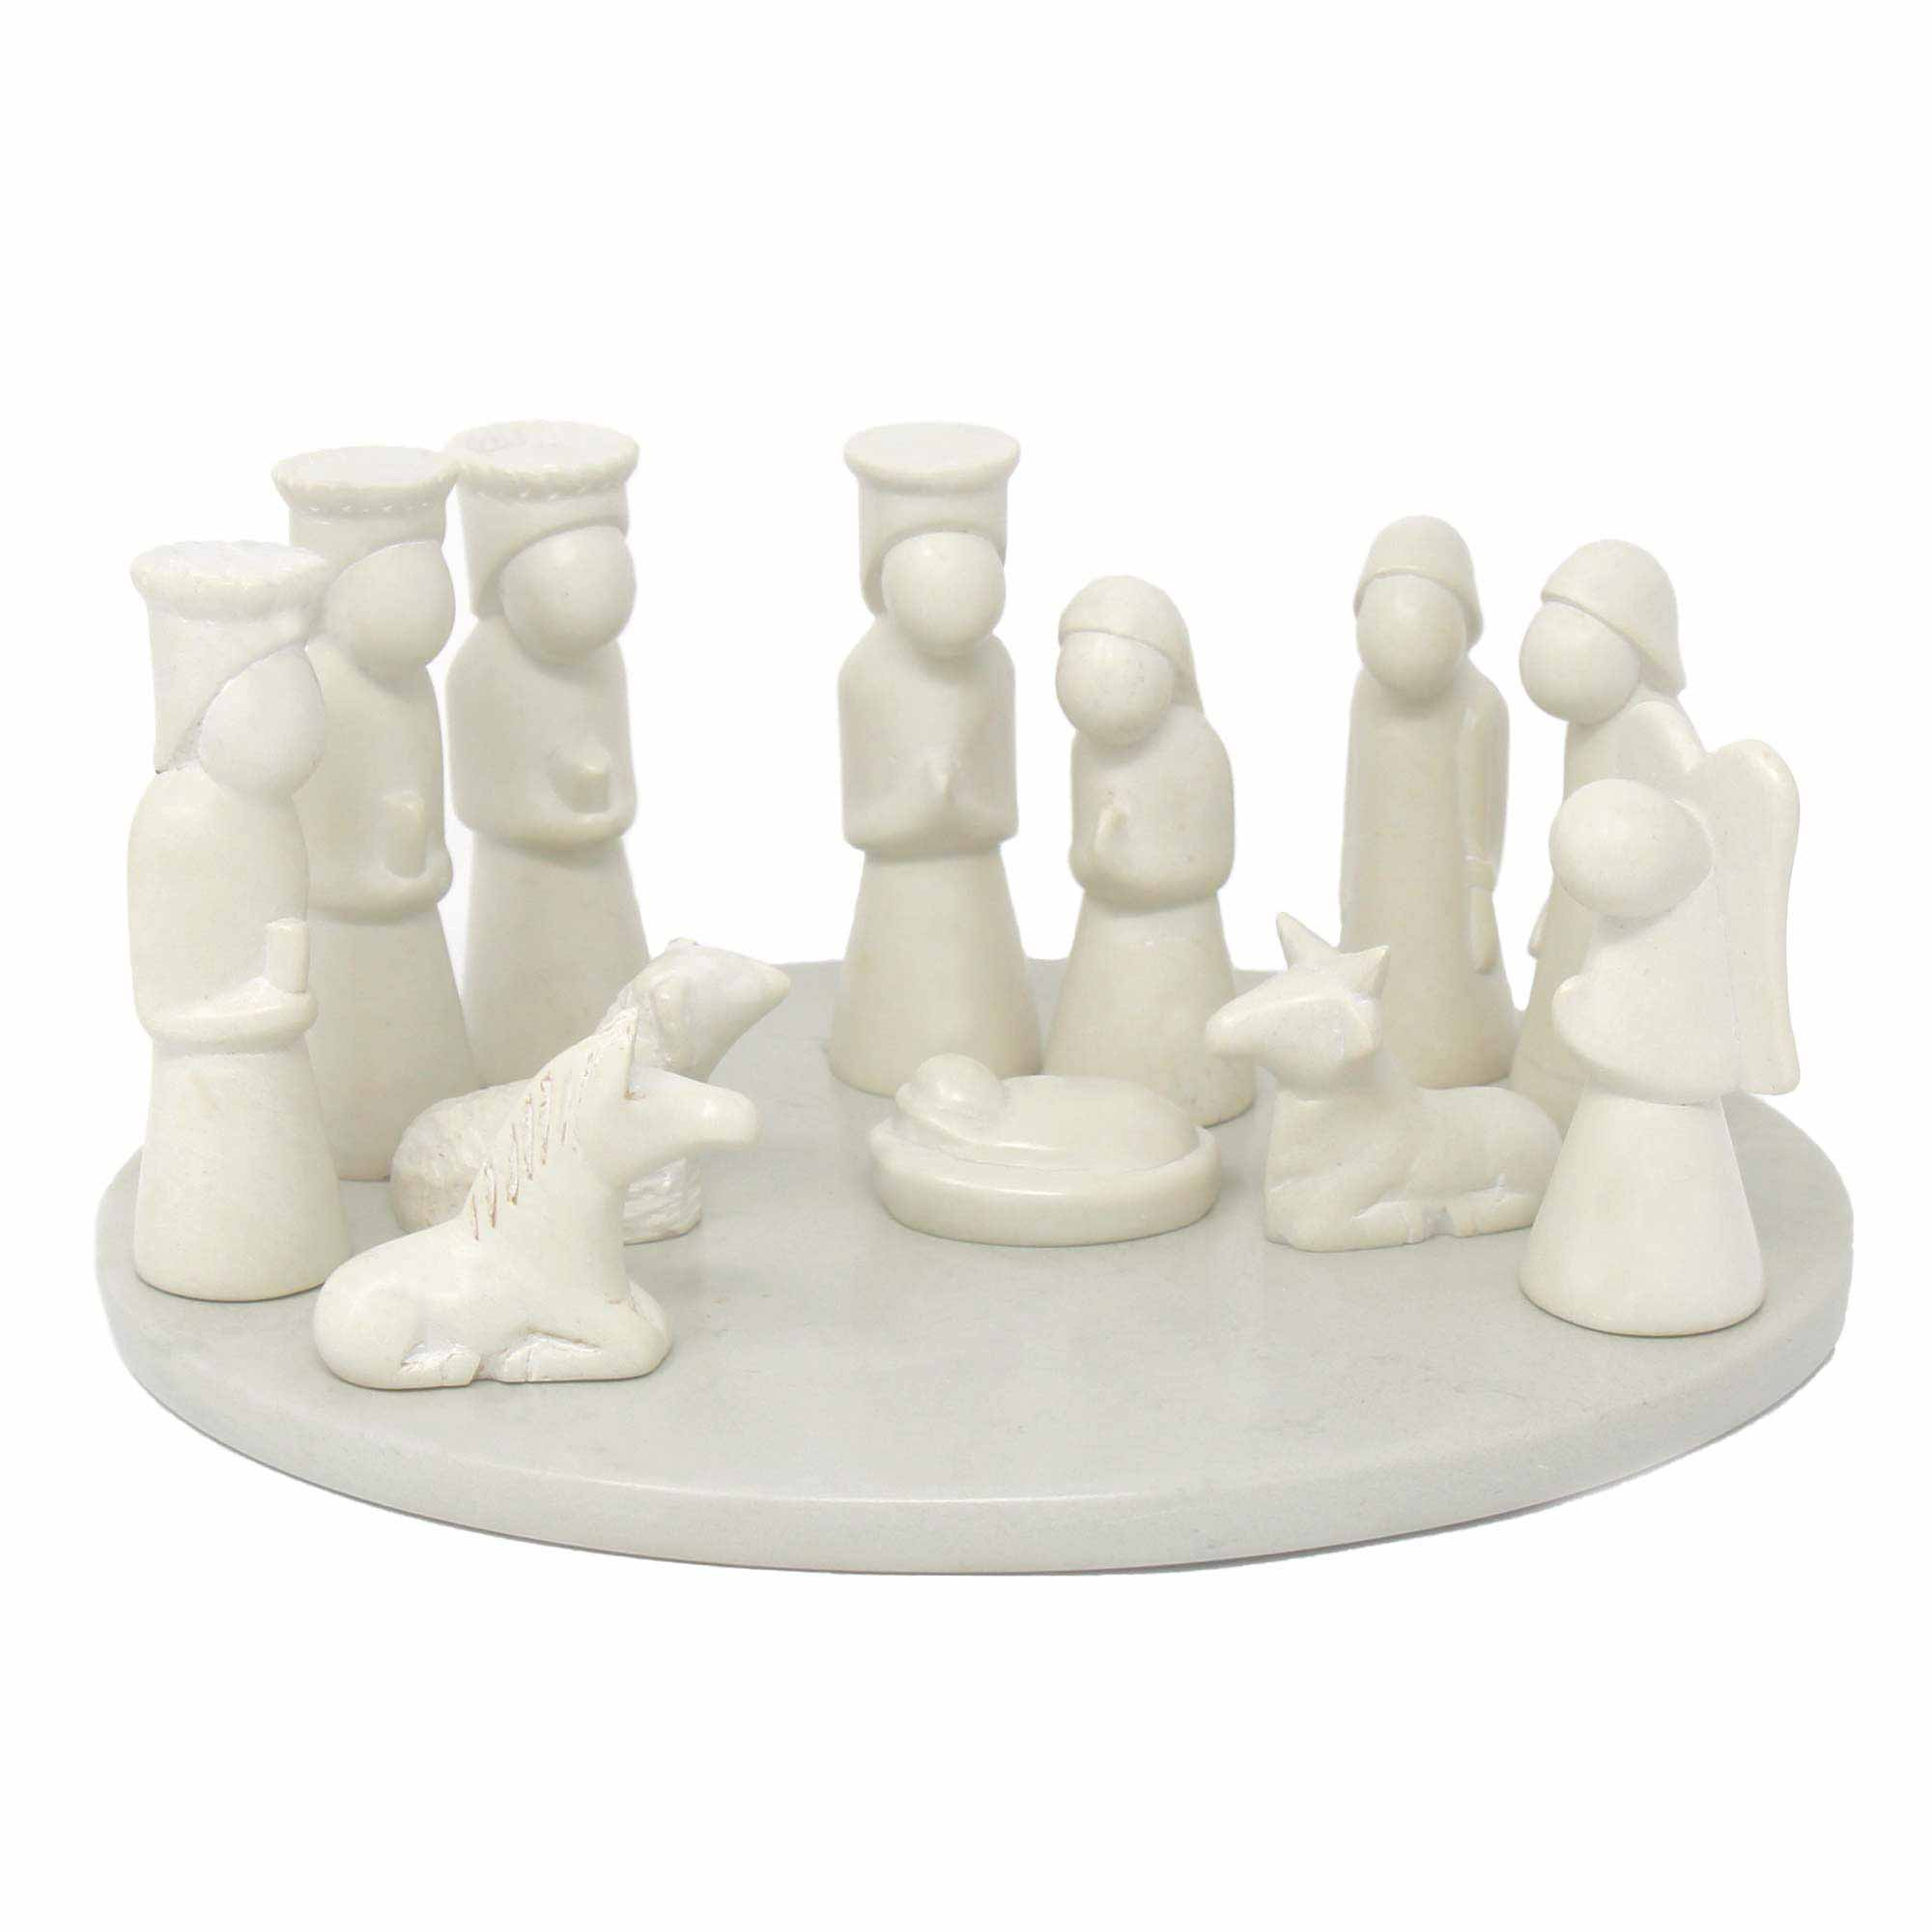 Nativity Soapstone Sculpture, 13-Piece Set (including Display Board)